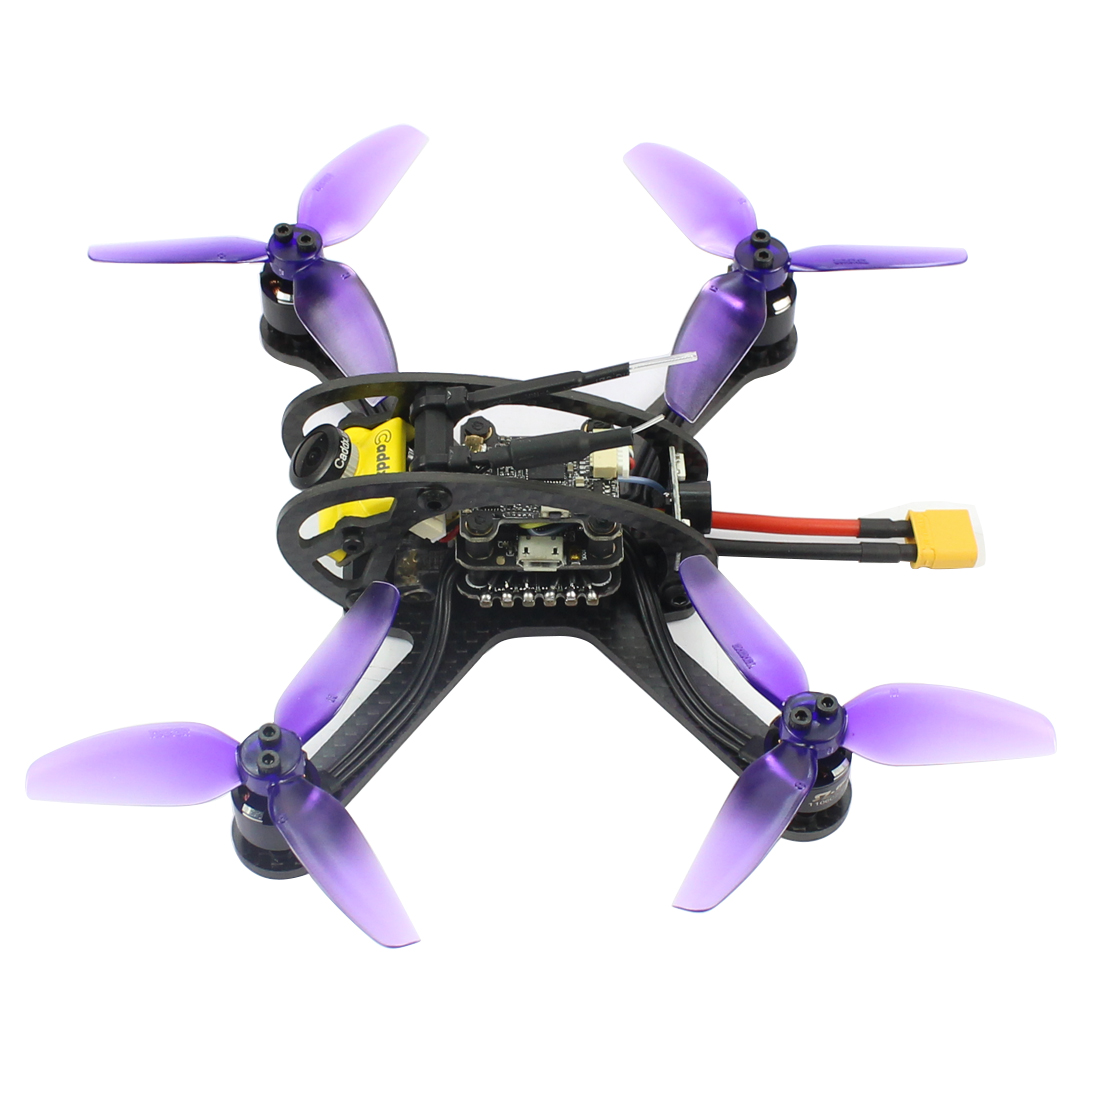 Leader3/3SE 130mm FPV course Drone RC Mini quadrirotor F4 OSD 28A BLHeli_S 48CH 600 mW Caddx Micro F1 PNP/BNF pour FRSKY FLYSKY